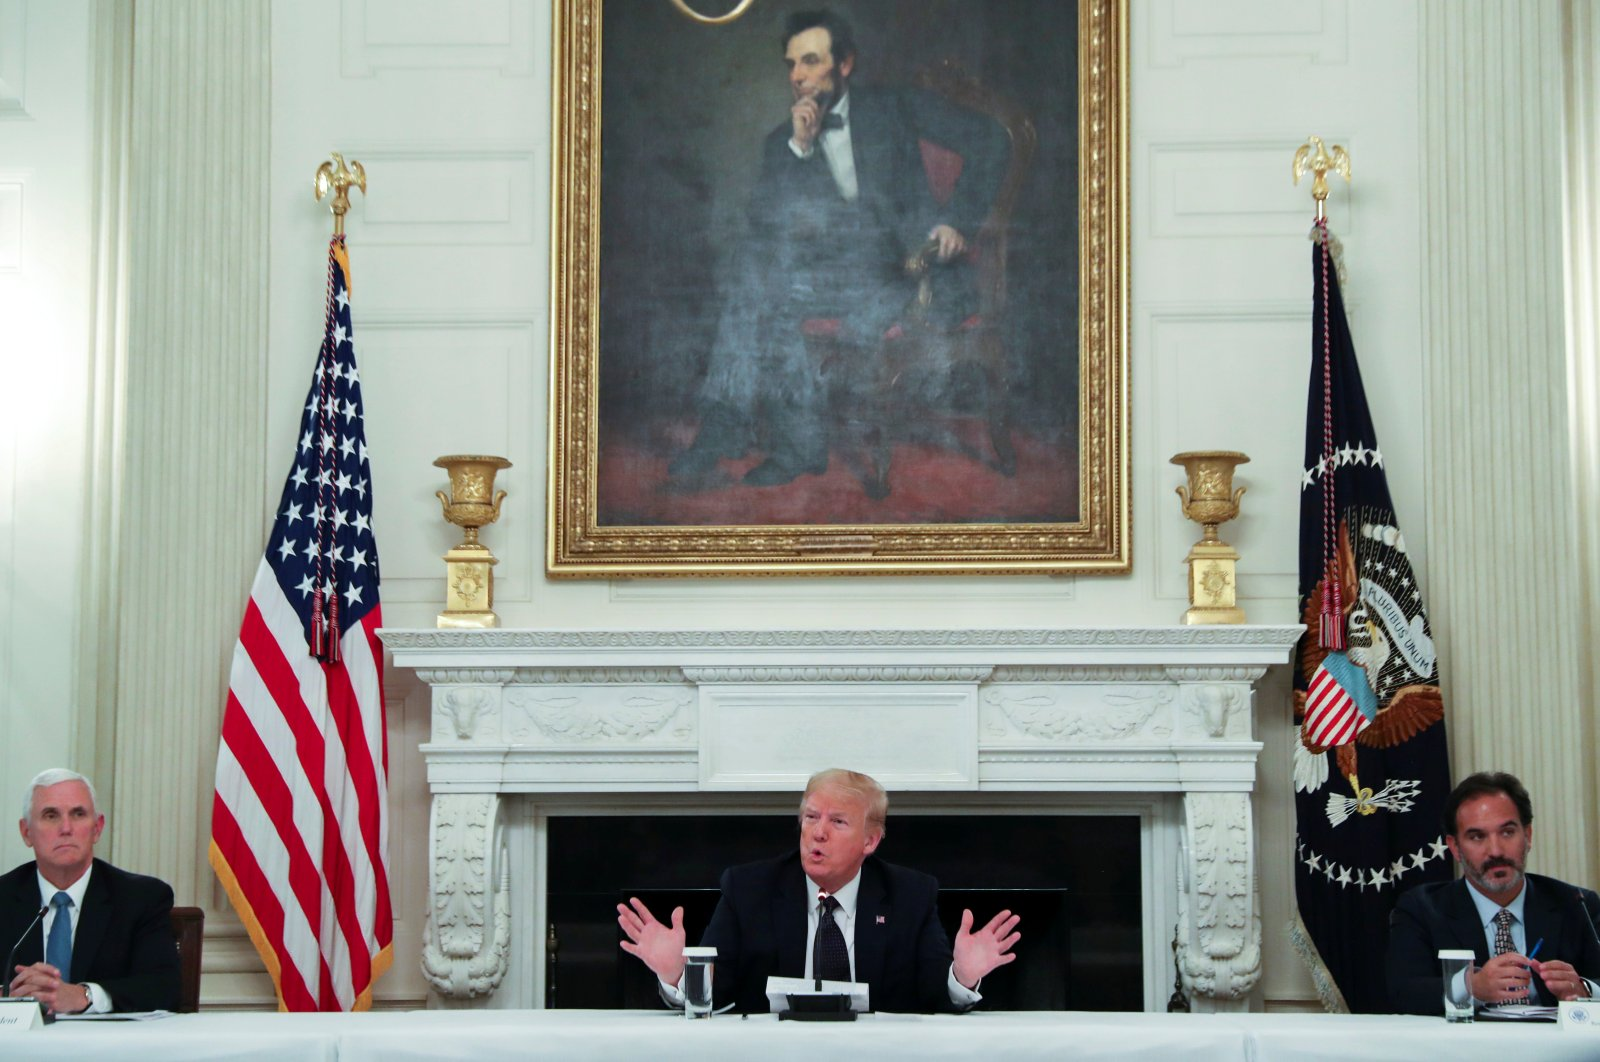 U.S. President Donald Trump talks about taking daily doses of hydroxychloroquine in the State Dining Room at the White House, Washington, D.C., U.S., May 18, 2020. (Reuters Photo)